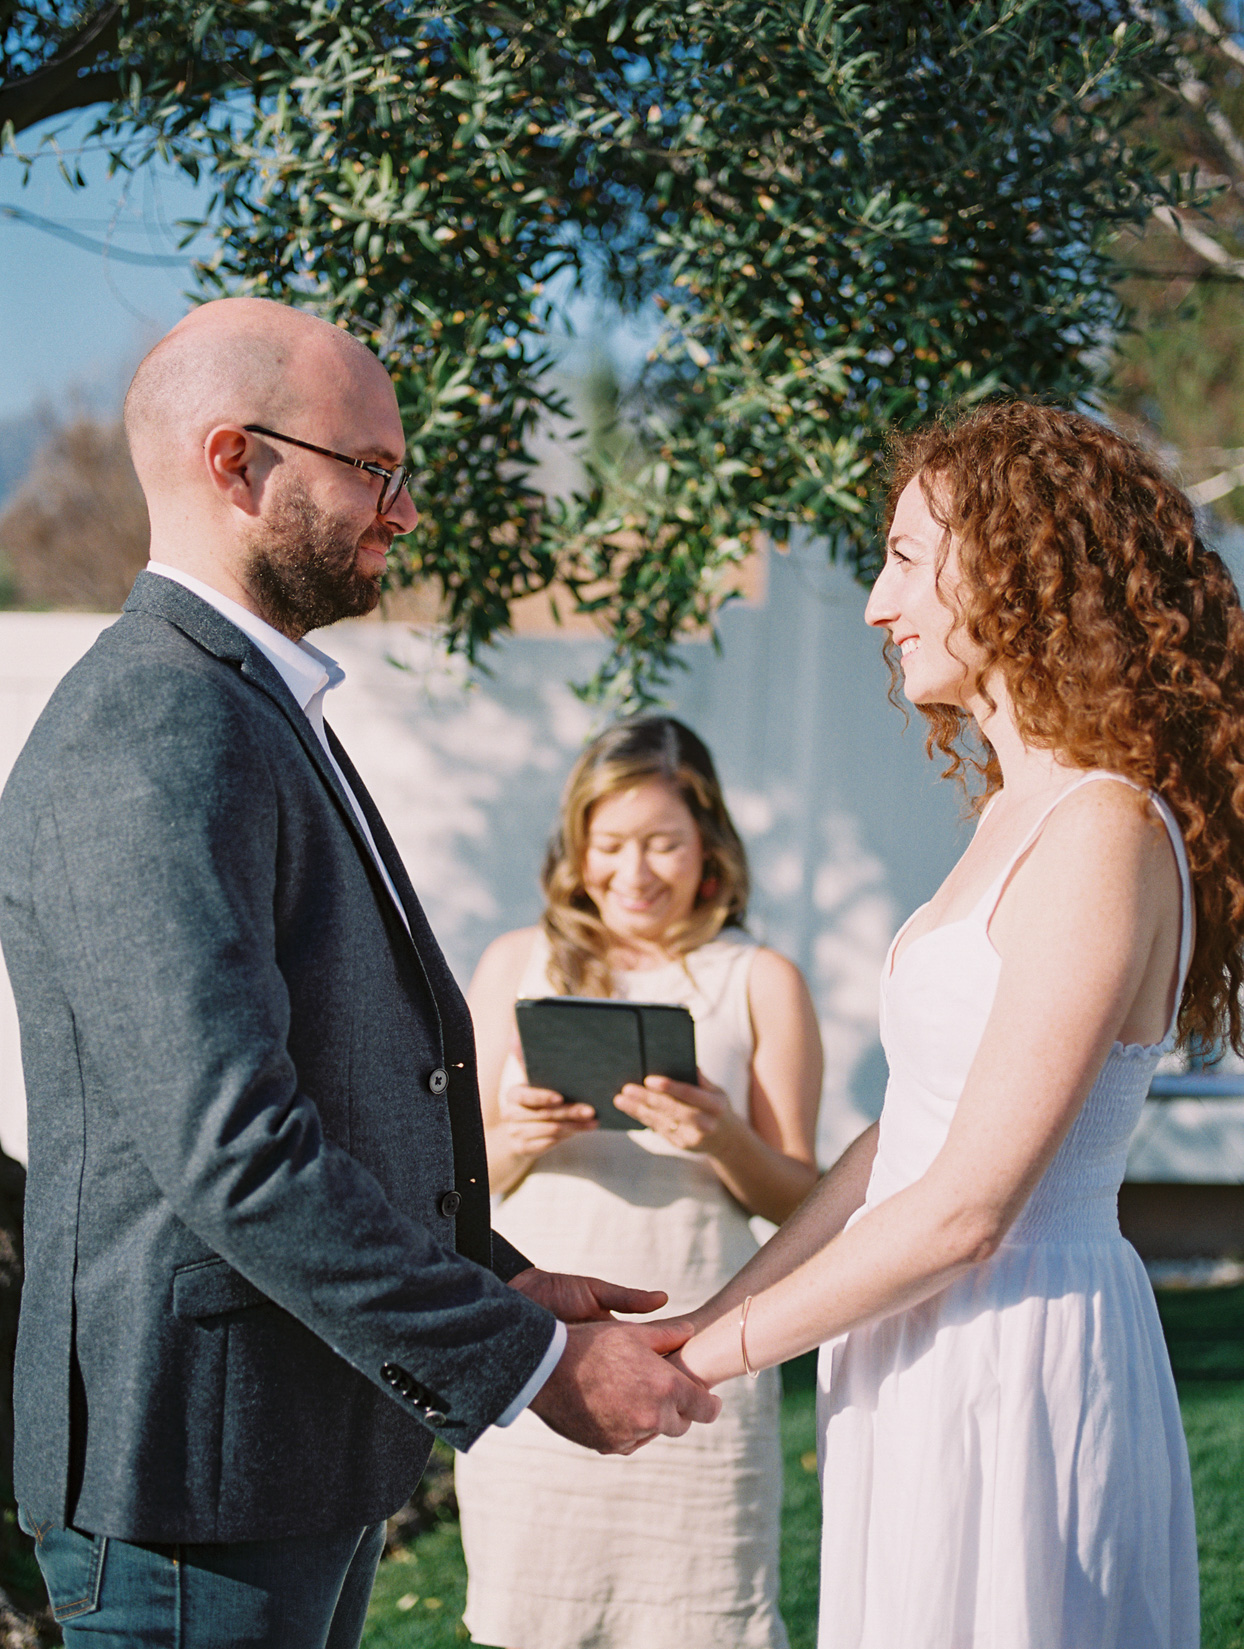 couple holding hands for wedding vows in backyard ceremony